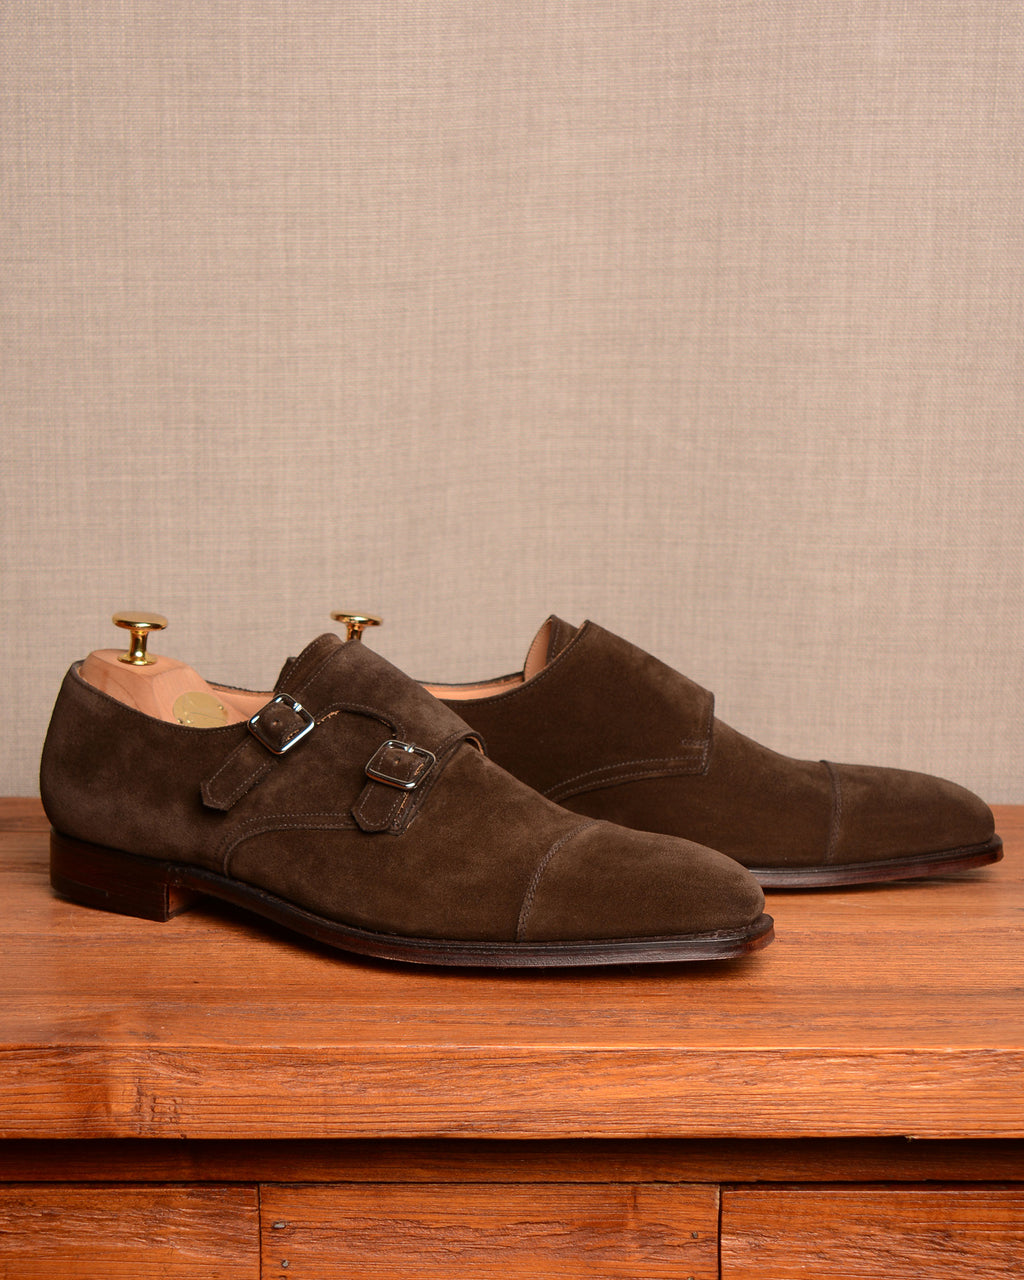 Crockett & Jones Lowndes - Espresso Suede